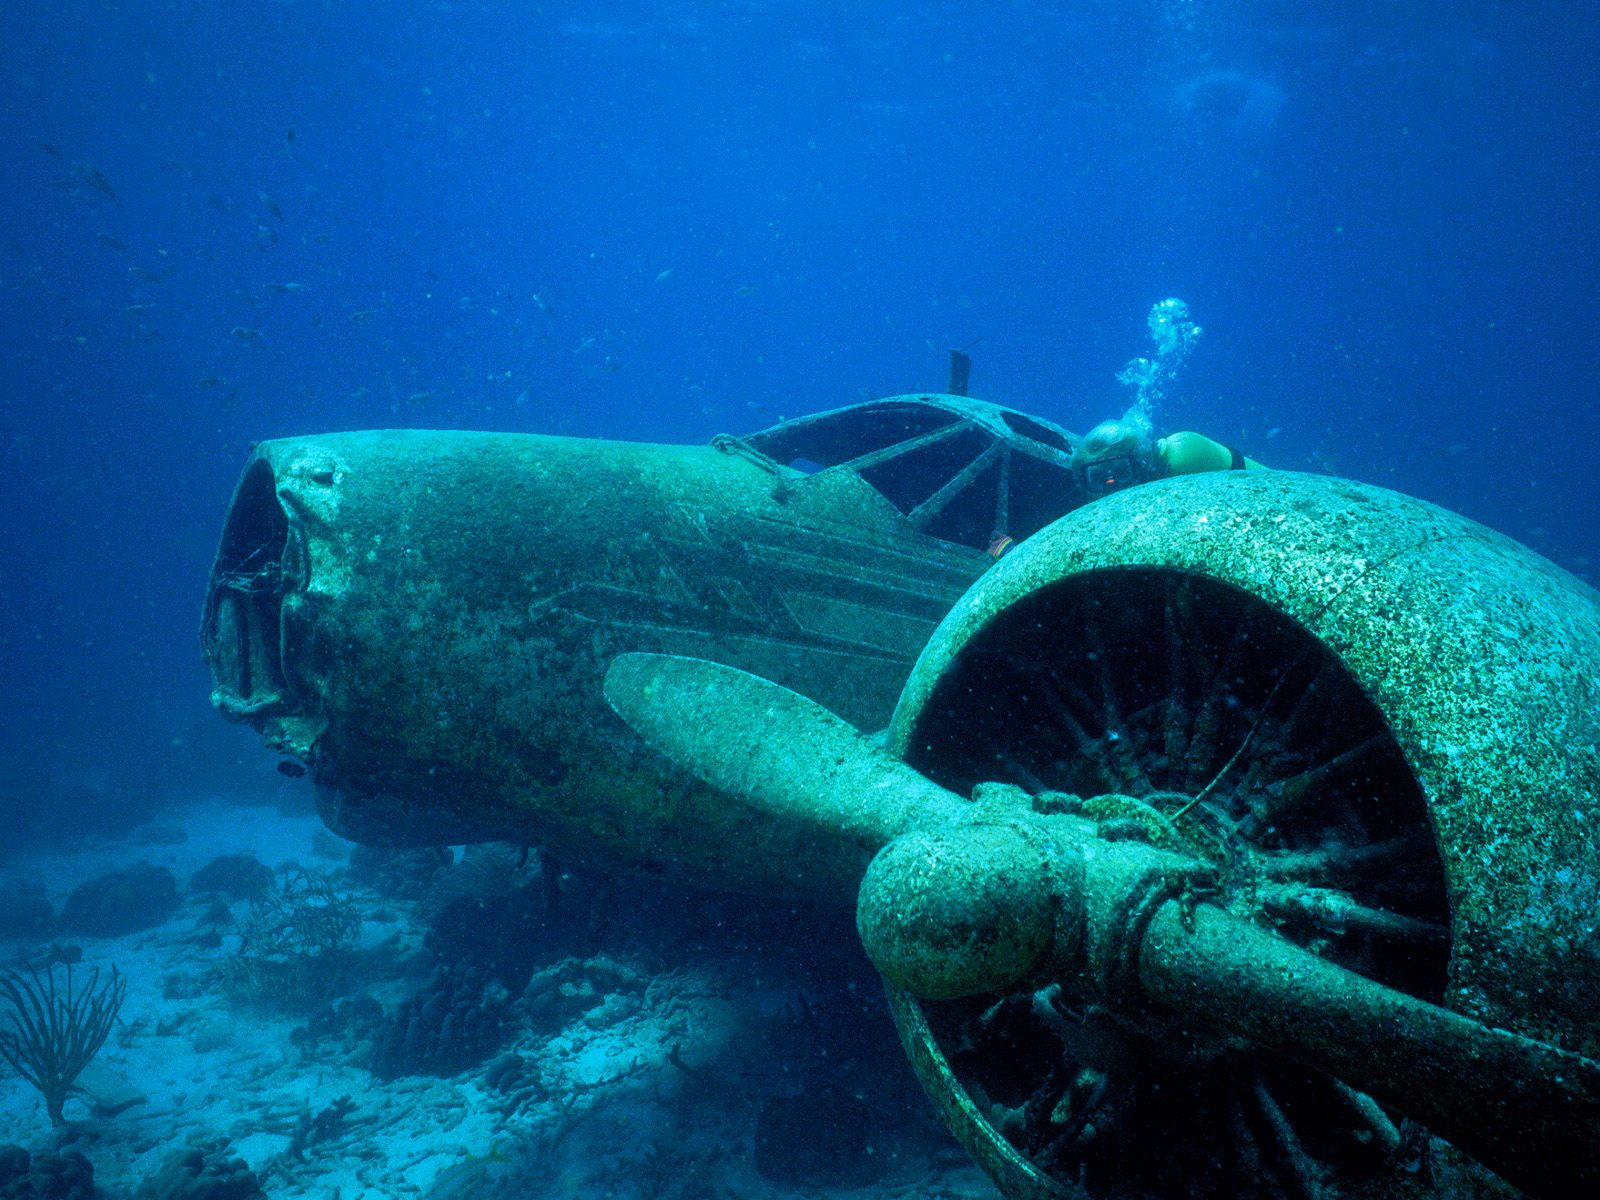 Crash Plane Wallpapers here you can see Underwater Airplane Crash 1600x1200